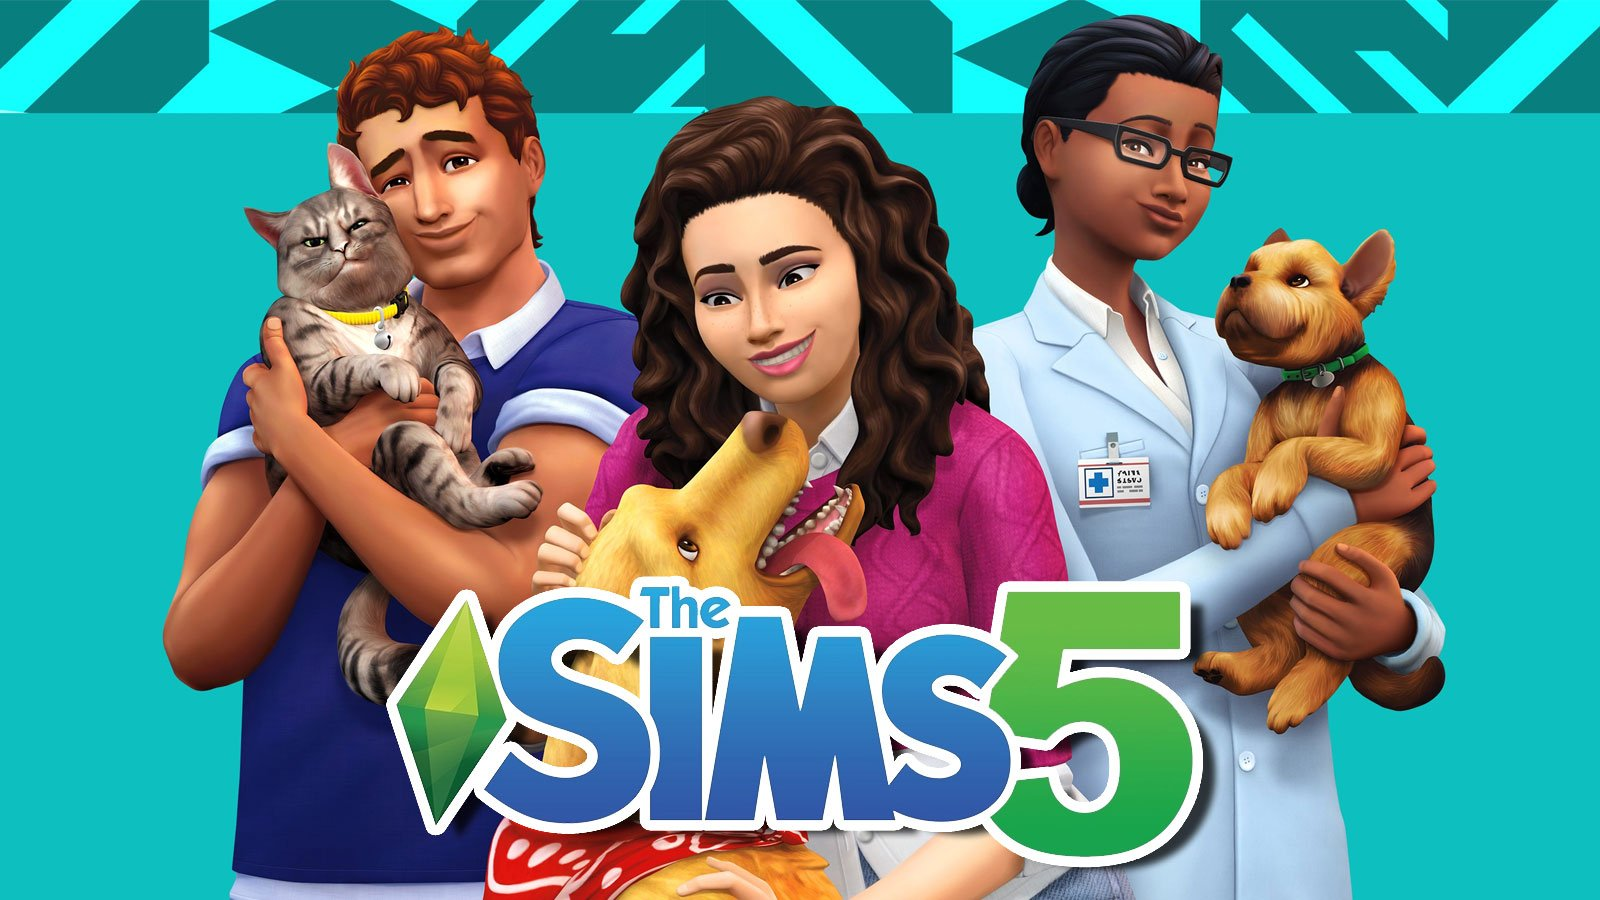 The Sims 5 Release Date Speculations and Updates for Devs